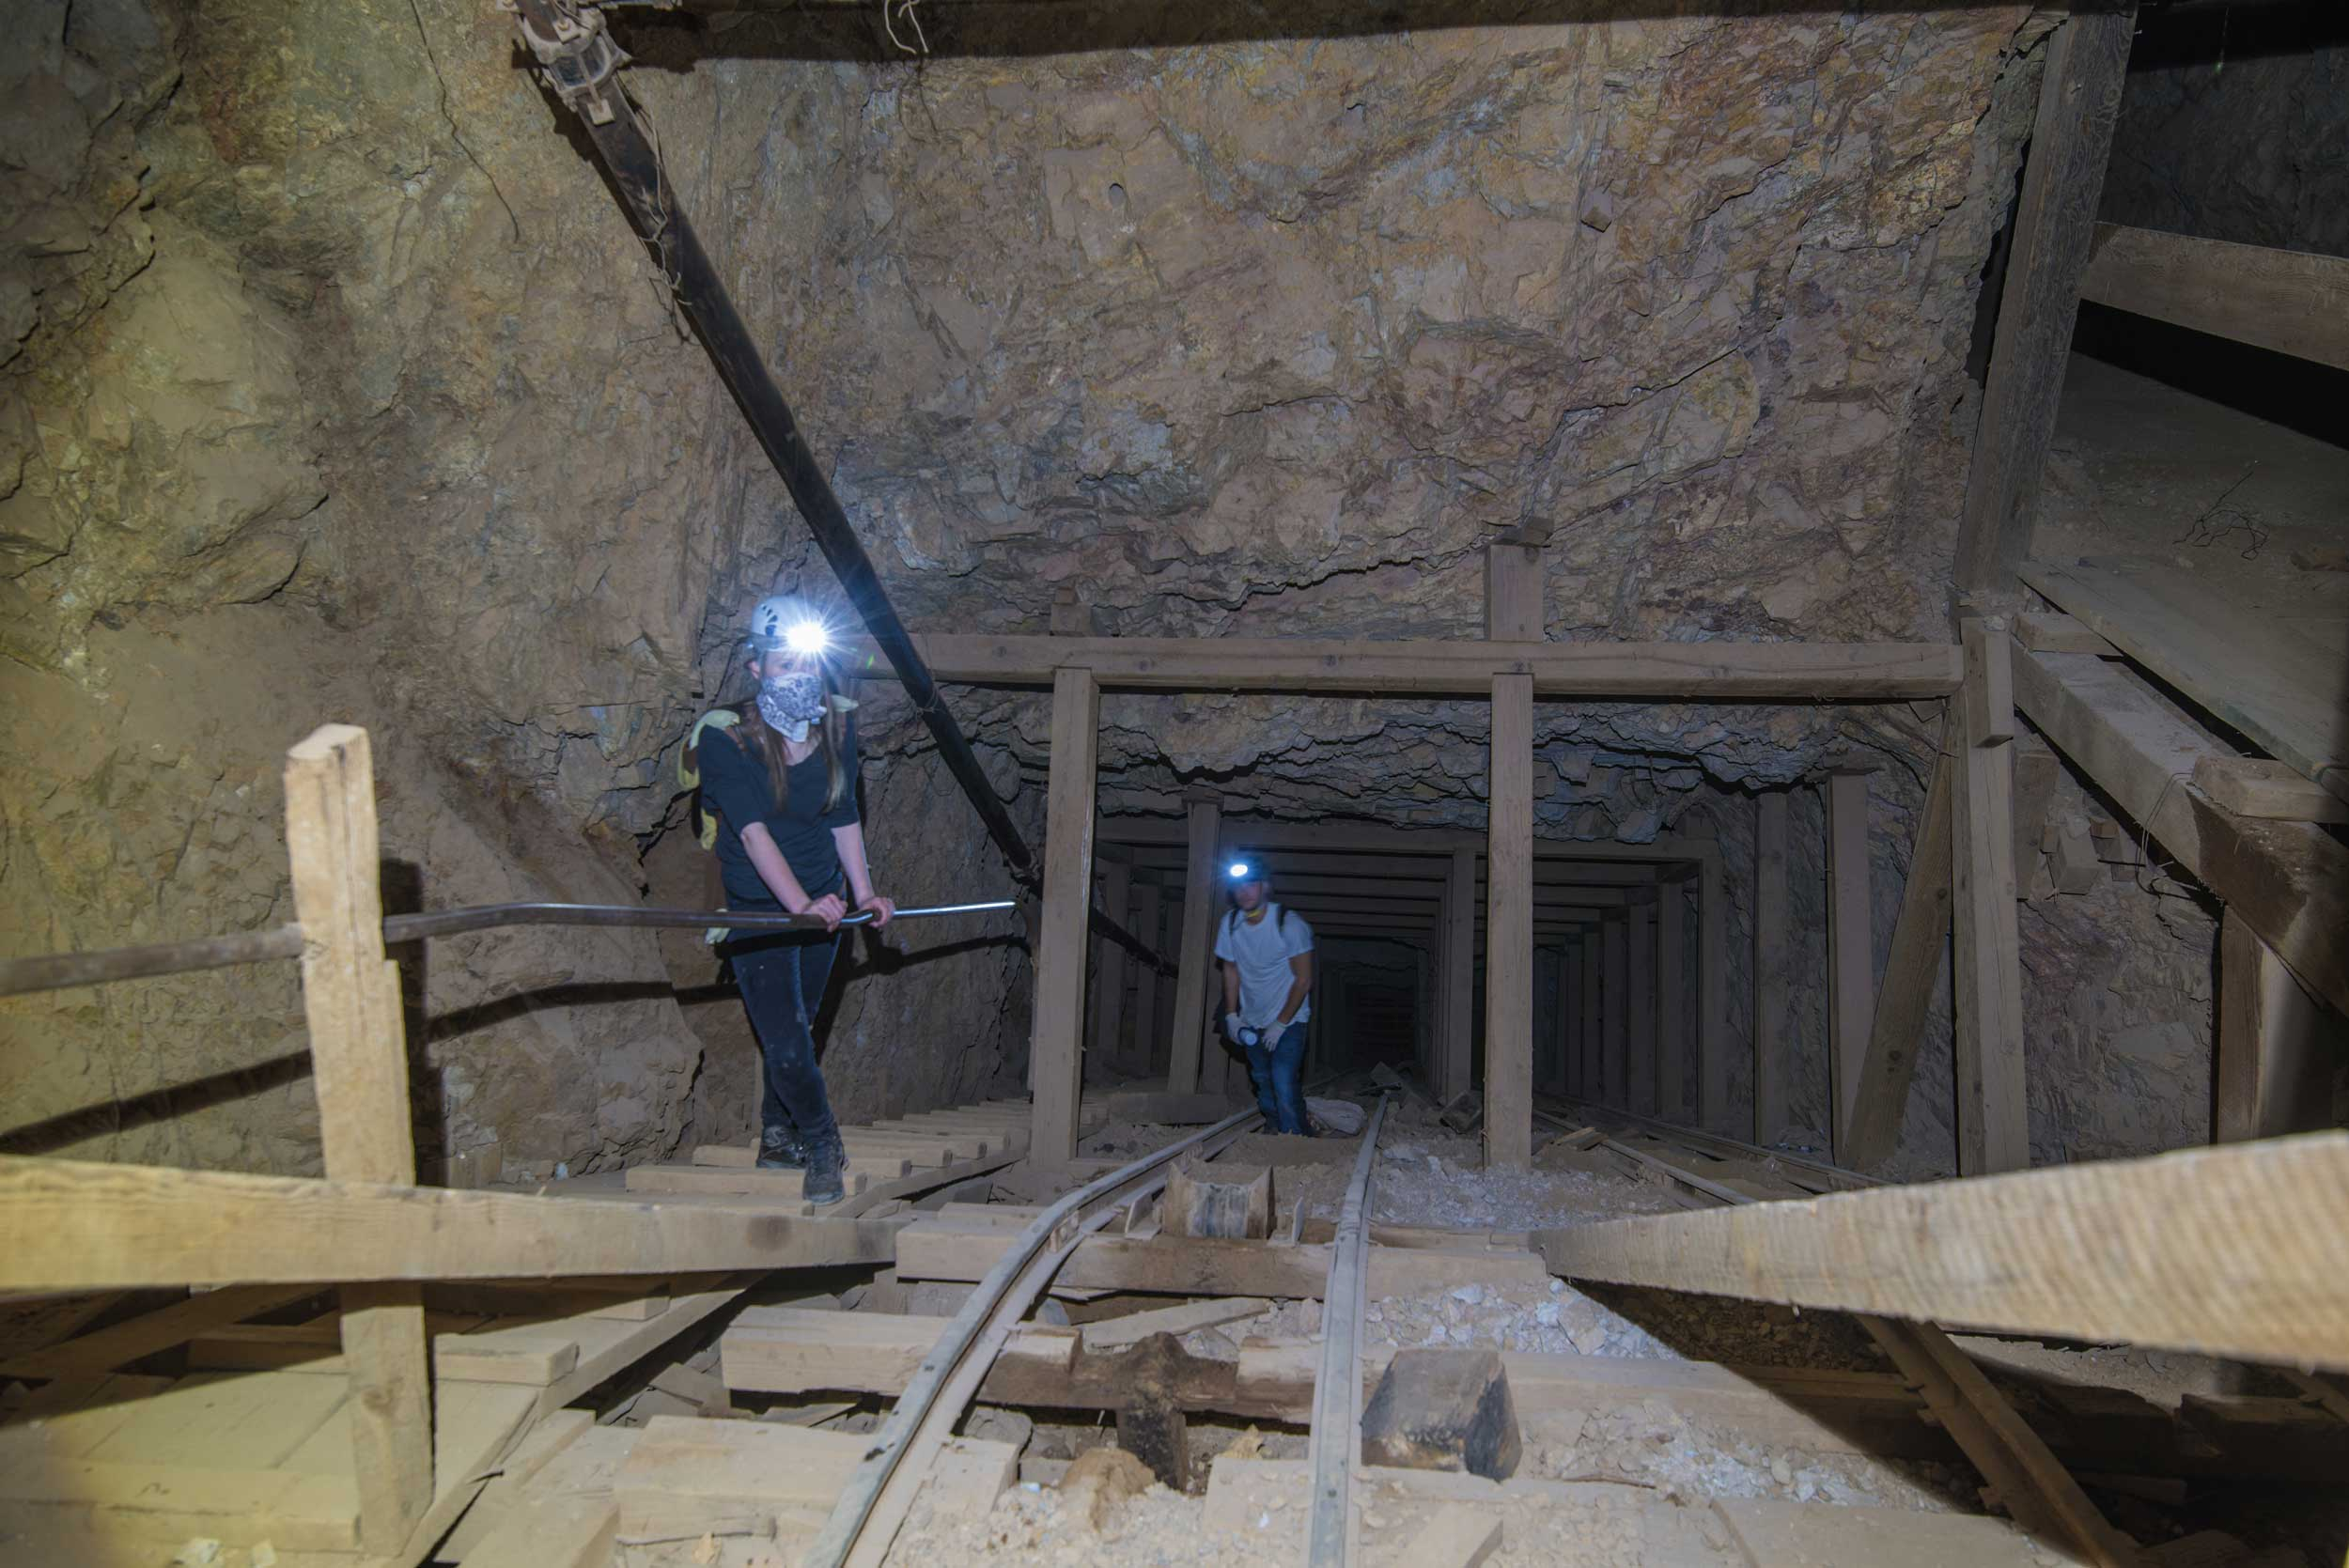 The mine shaft descends to over 300 feet below the surface